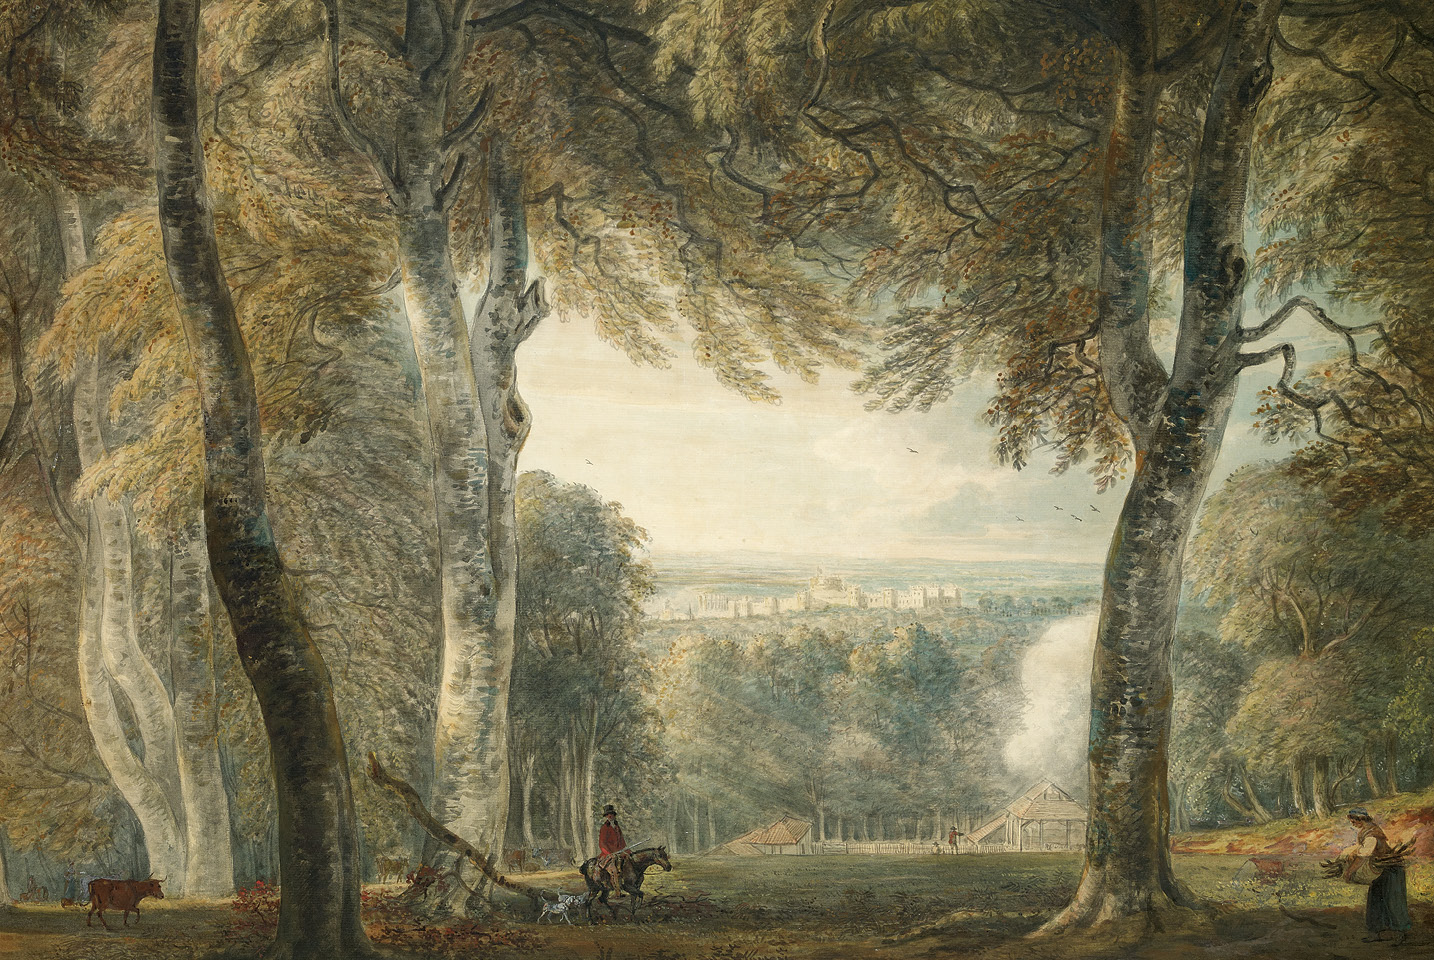 below Windsor Castle from Bishopsgate in the Great Park, 1792. This watercolour by Paul Sandby captures the chief attraction of Windsor for the Norman and Angevin kings of England: the abundance of wild game and the opportunities for hunting in the surrounding royal forests. below right This hand-coloured aquatint from Select Views of Windsor (1827), by William Daniell, depicts the classic view of Windsor Castle from the Brocas, the large meadow on the Eton side (north bank) of the River Thames. Then, as now, the Brocas is a popular picnic spot, boat mooring, and place of recreation.